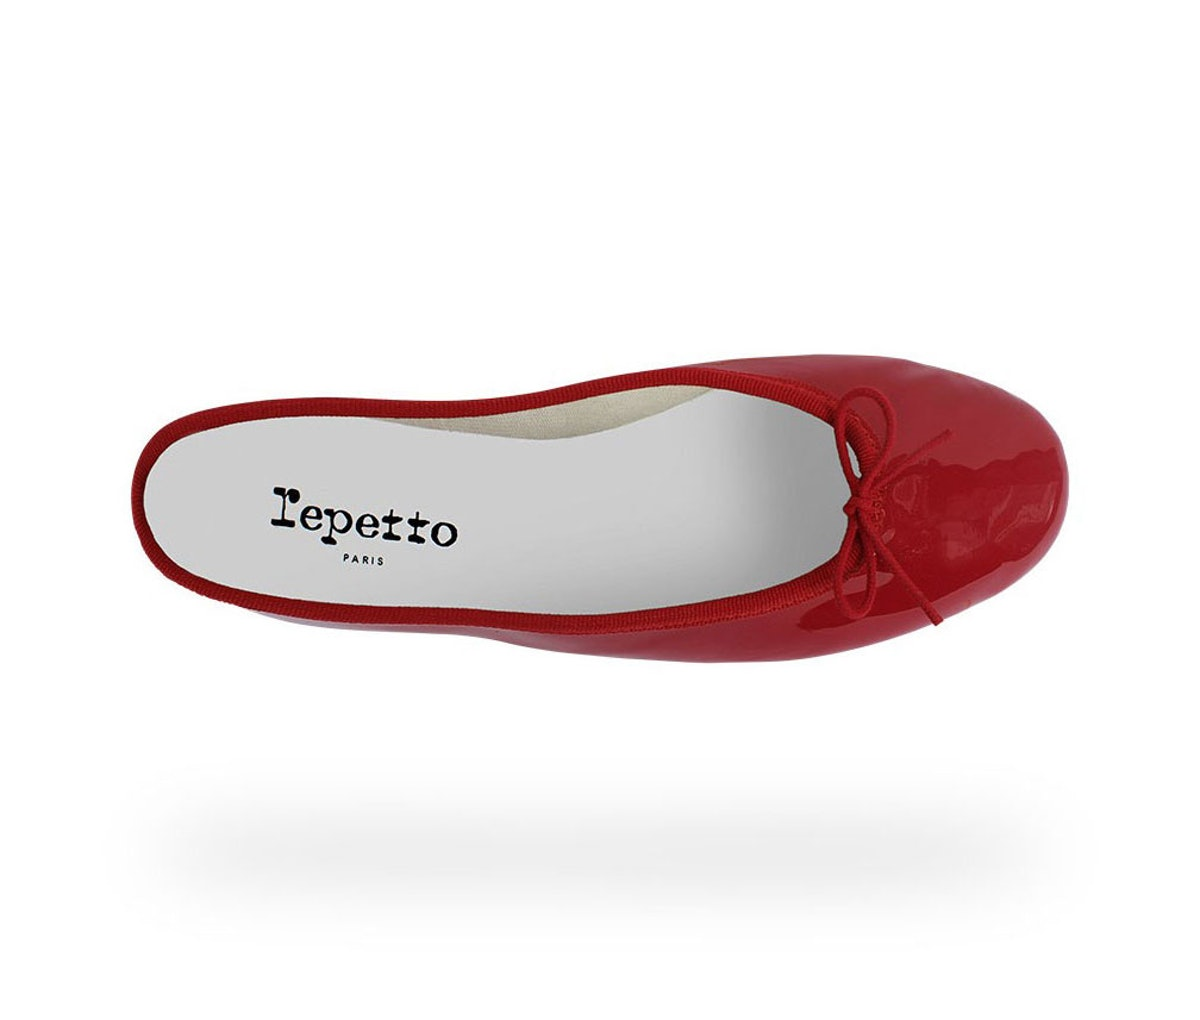 Repetto ballet flat in red patent